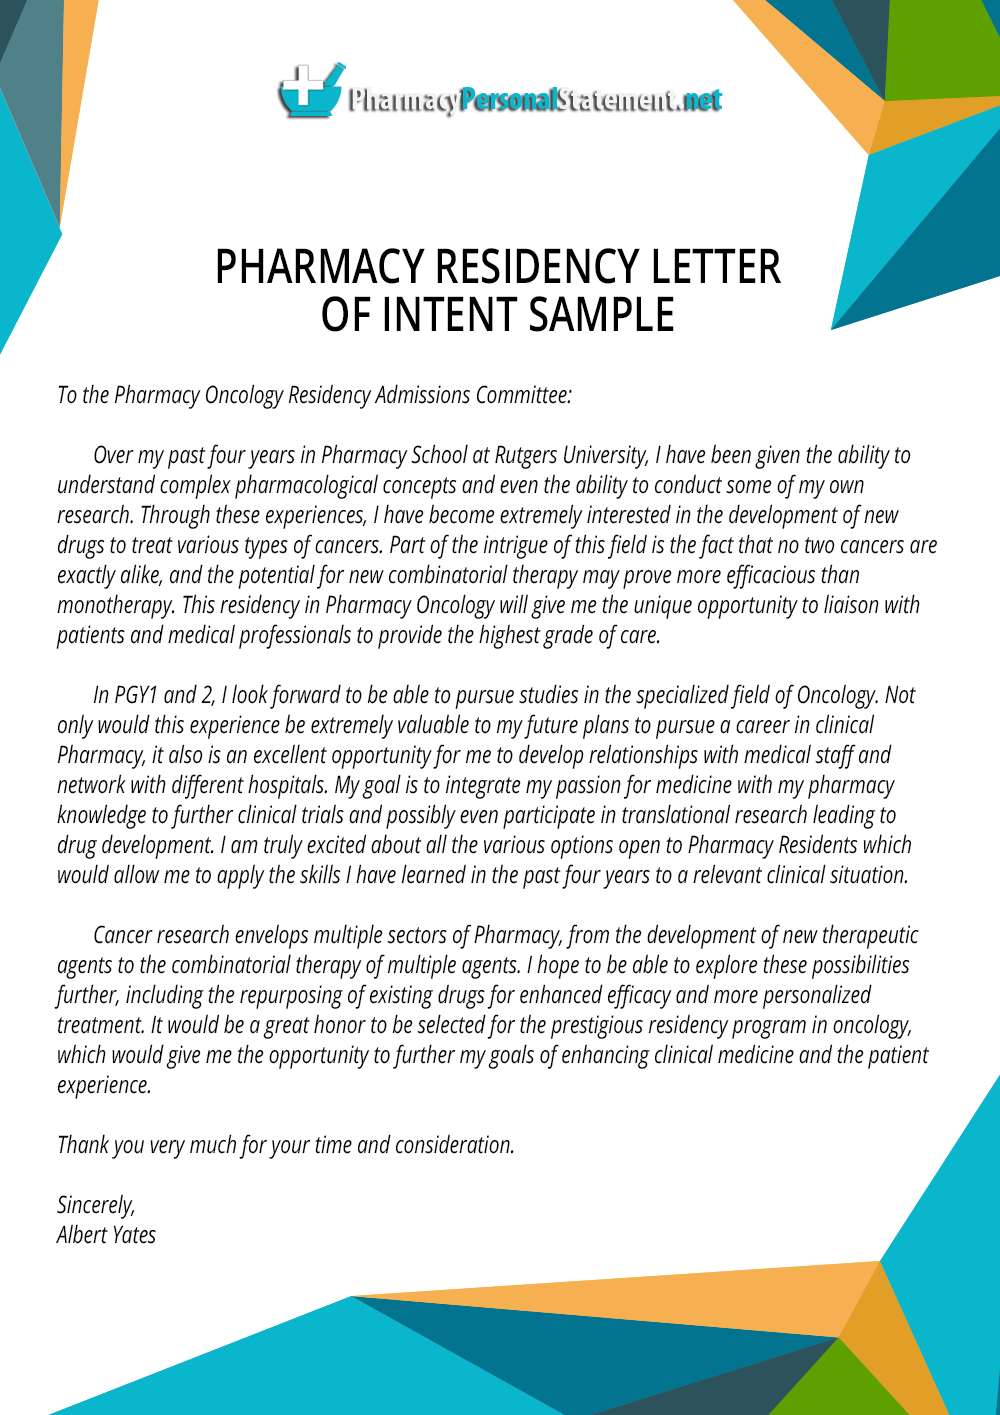 Pharmacy Residency Letter of Intent Sample by PharmacyApplication – Sample Pharmacy Residency Letter of Intent